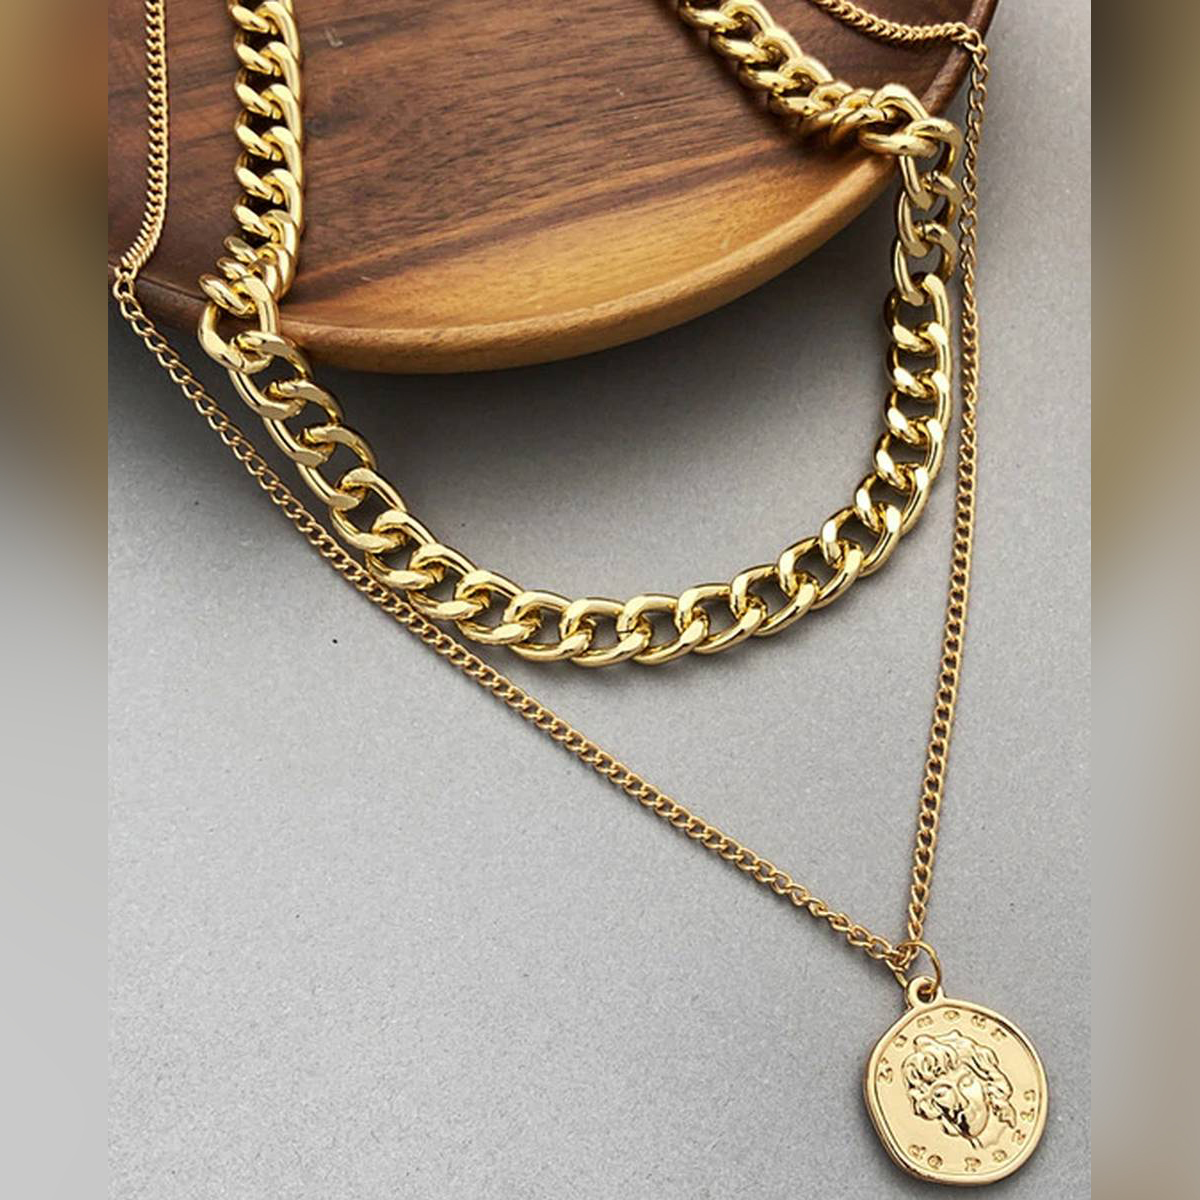 Coin Chain Choker Necklace For Women Multi-layer Gold Color 17KM Vintage Fashion Portrait Chunky Chain Necklaces Jewelry for Girls